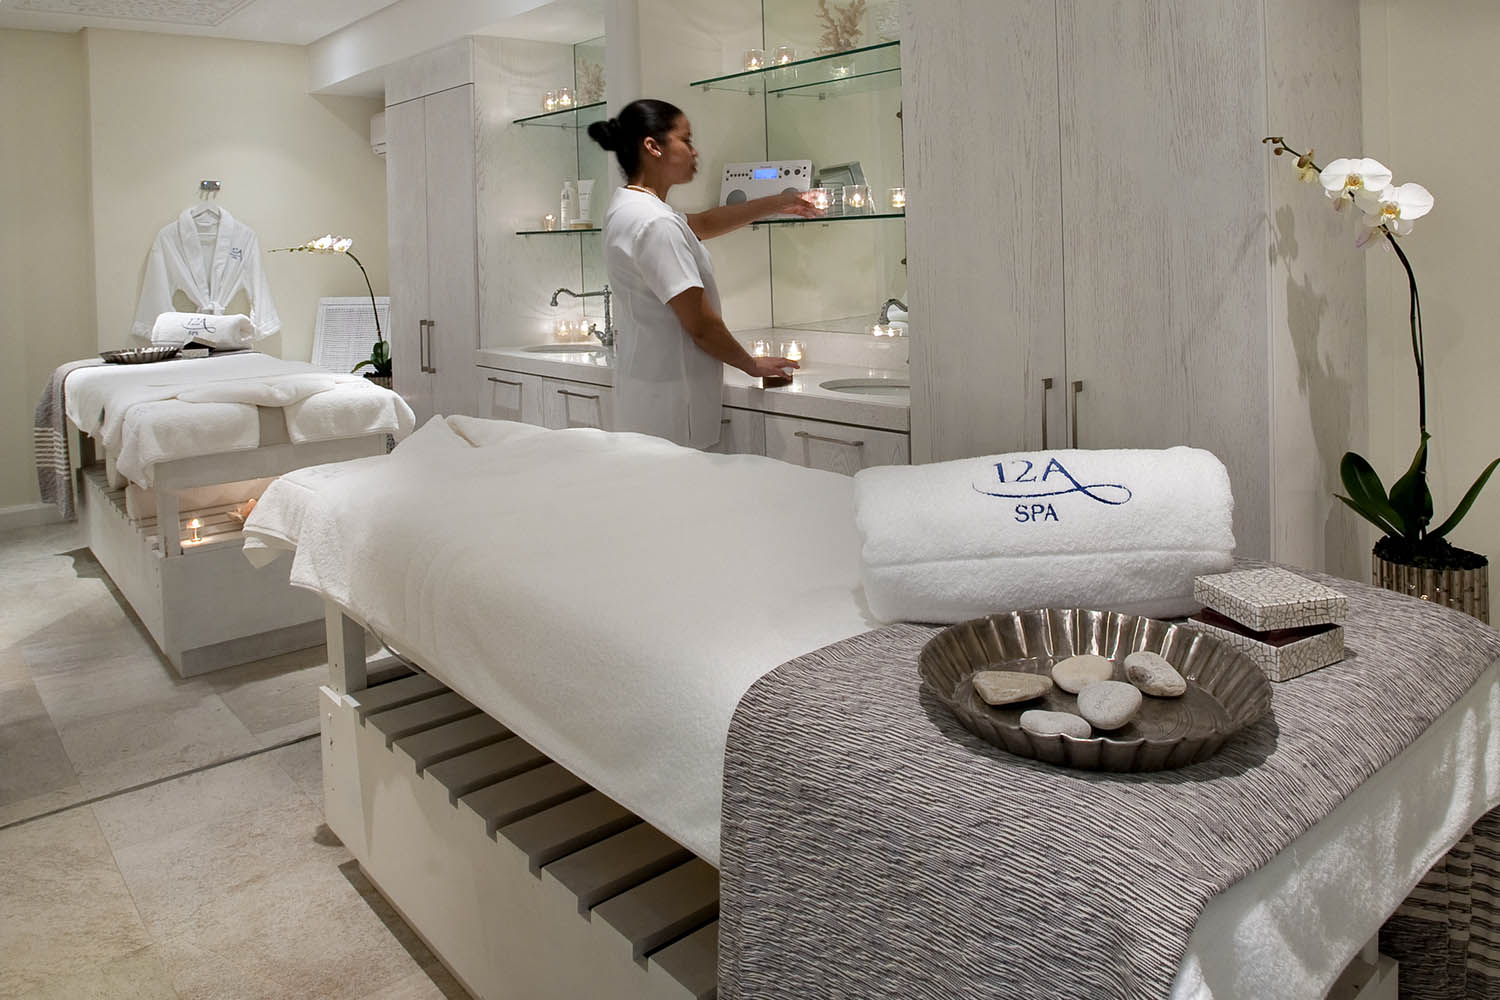 12 apostles hotel cape-town-south-africa-lodges-accommodation-zambia-in-style-spa-dual-treatment